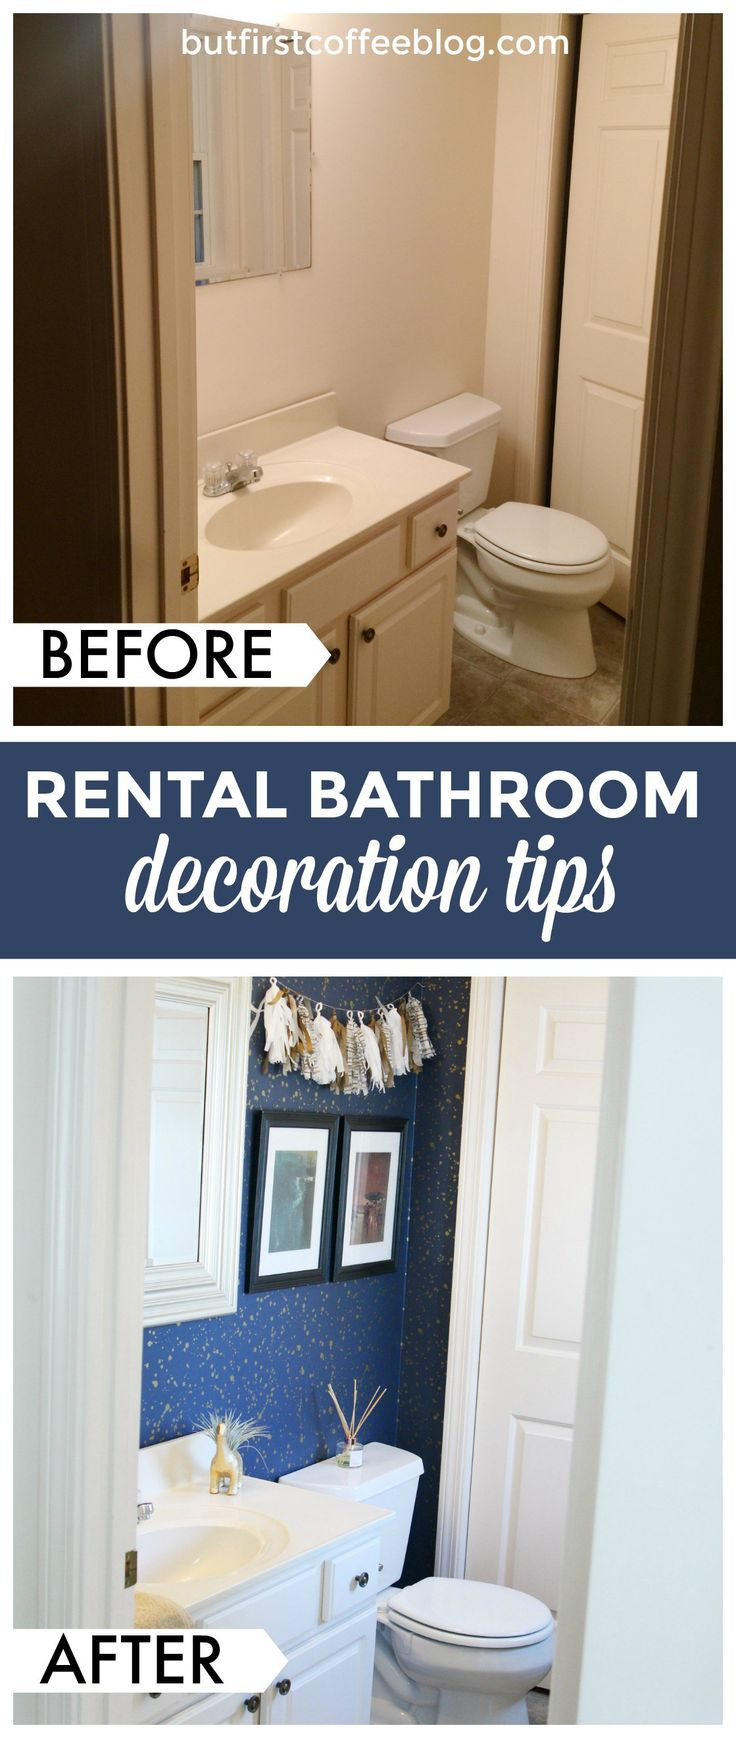 Best 25 rental bathroom ideas on pinterest rental for Decor properties